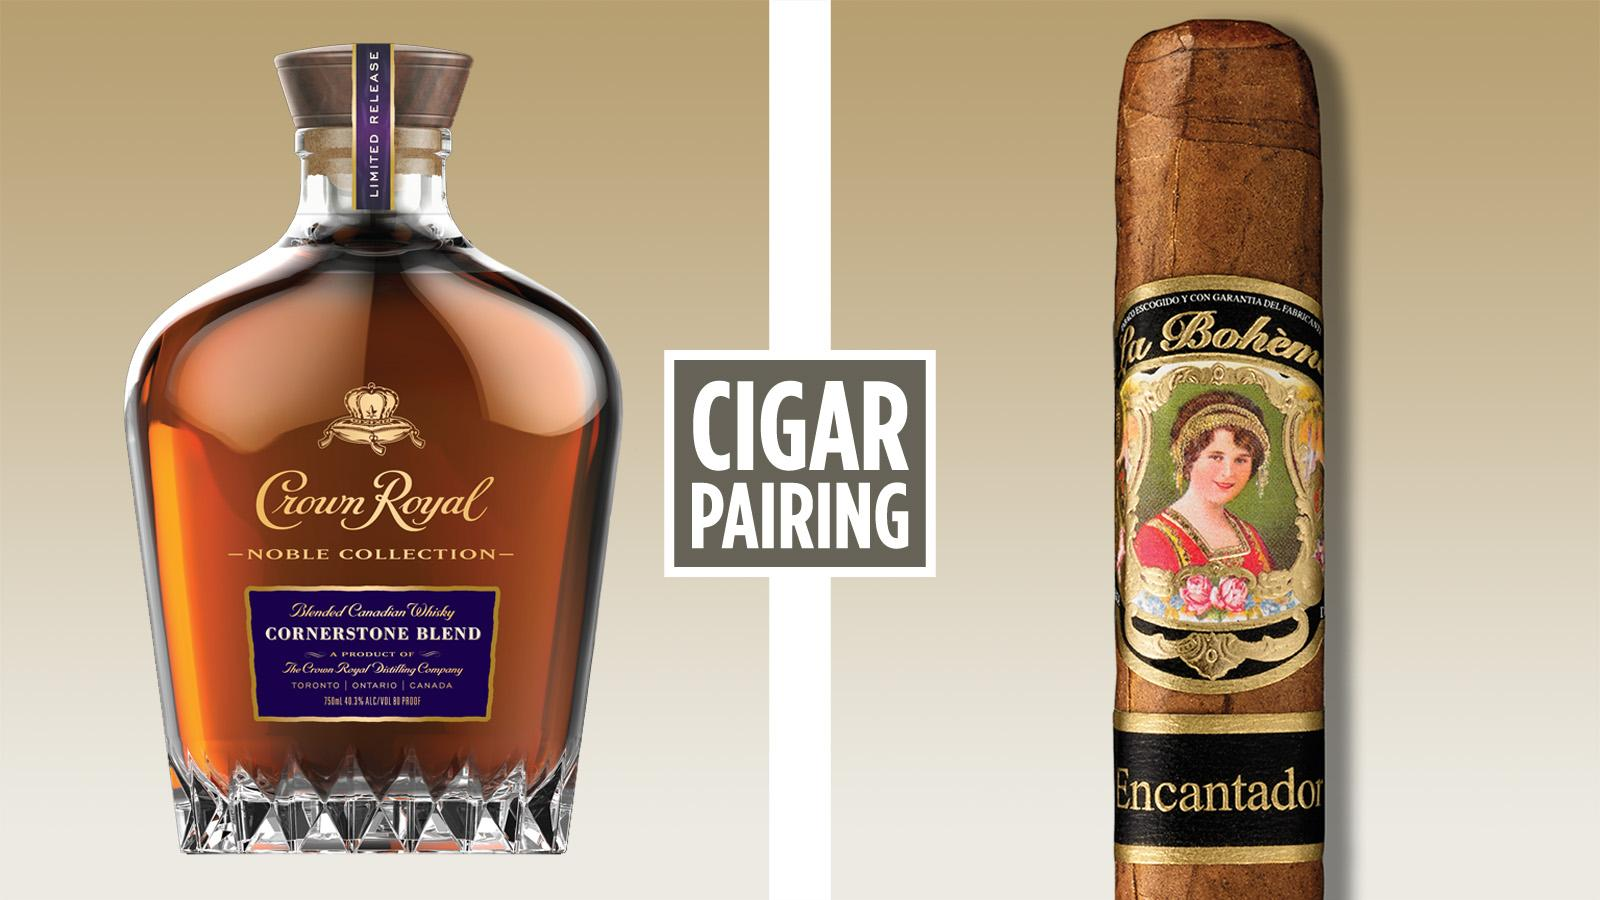 Cigar Pairing: Crown Royal Noble Collection—Cornerstone Blend Whisky